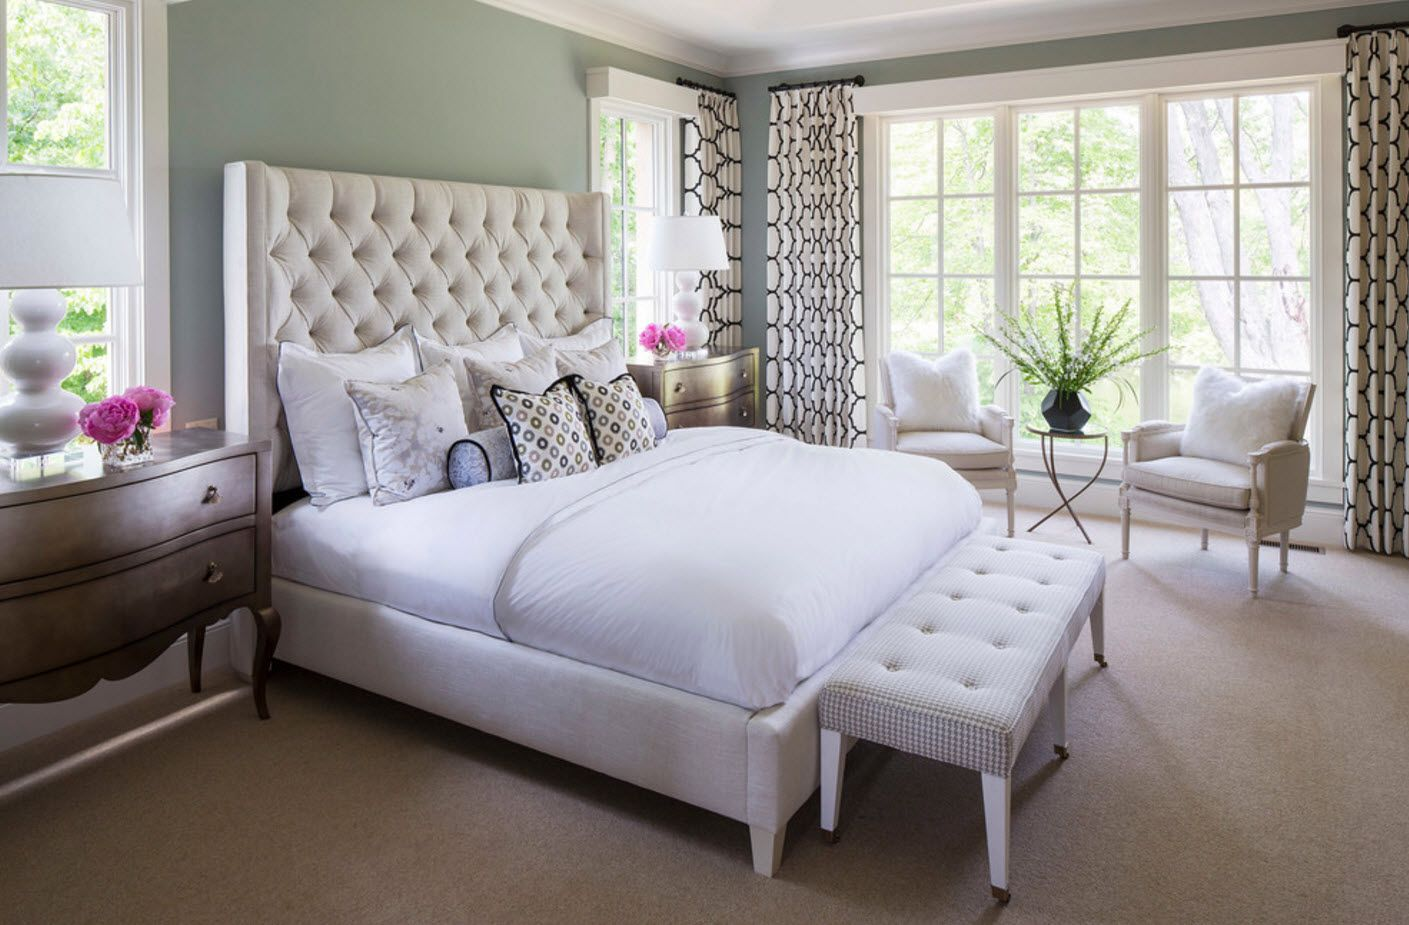 Quilted headboard at the classic bedroom with grommet top draperies with pattern